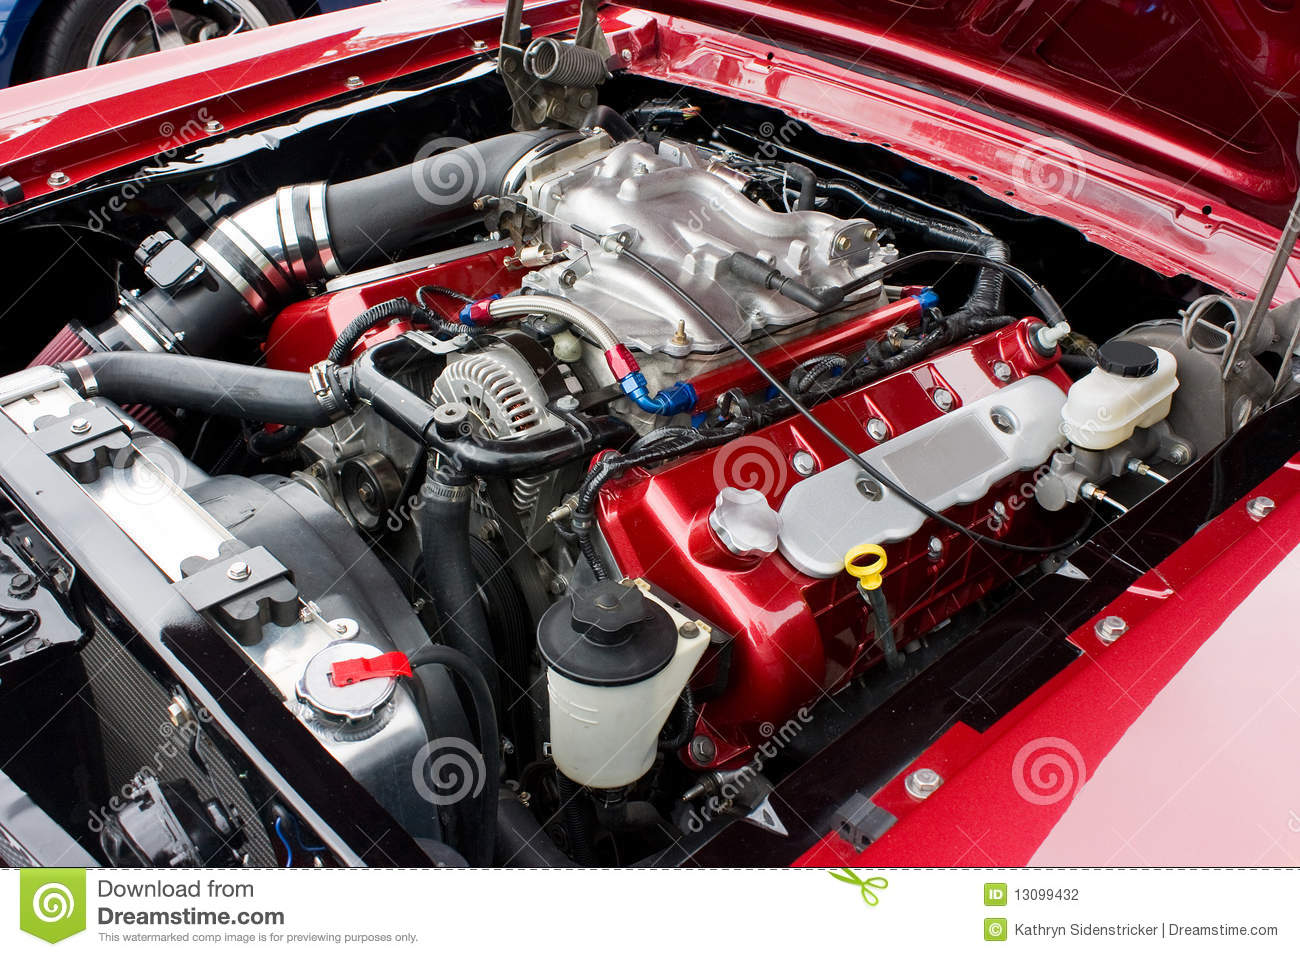 66 Mustang Engine Wiring Diagram 2002 Ford Mustang Cobra Engine Stock Photo Image Of Ford